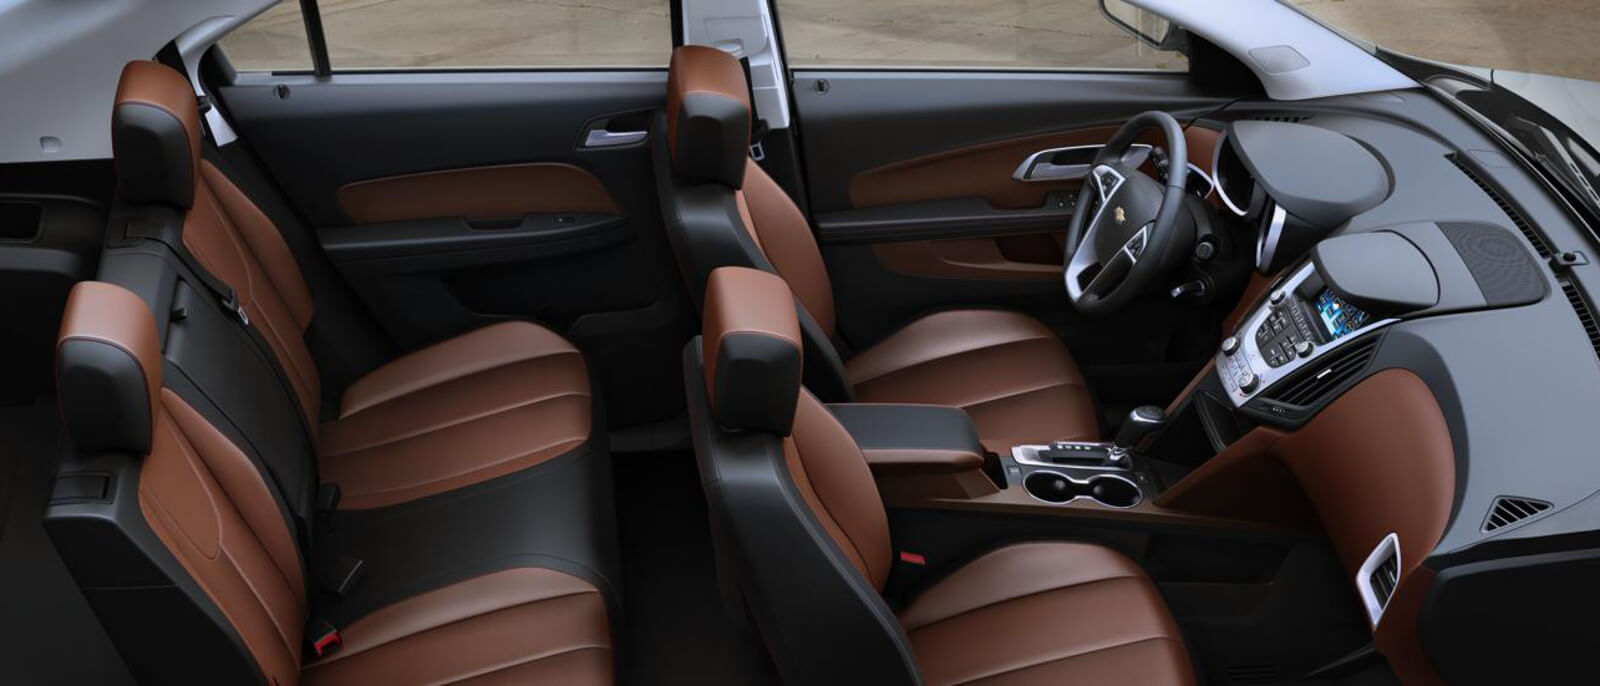 2016 Chevy Equinox Interior